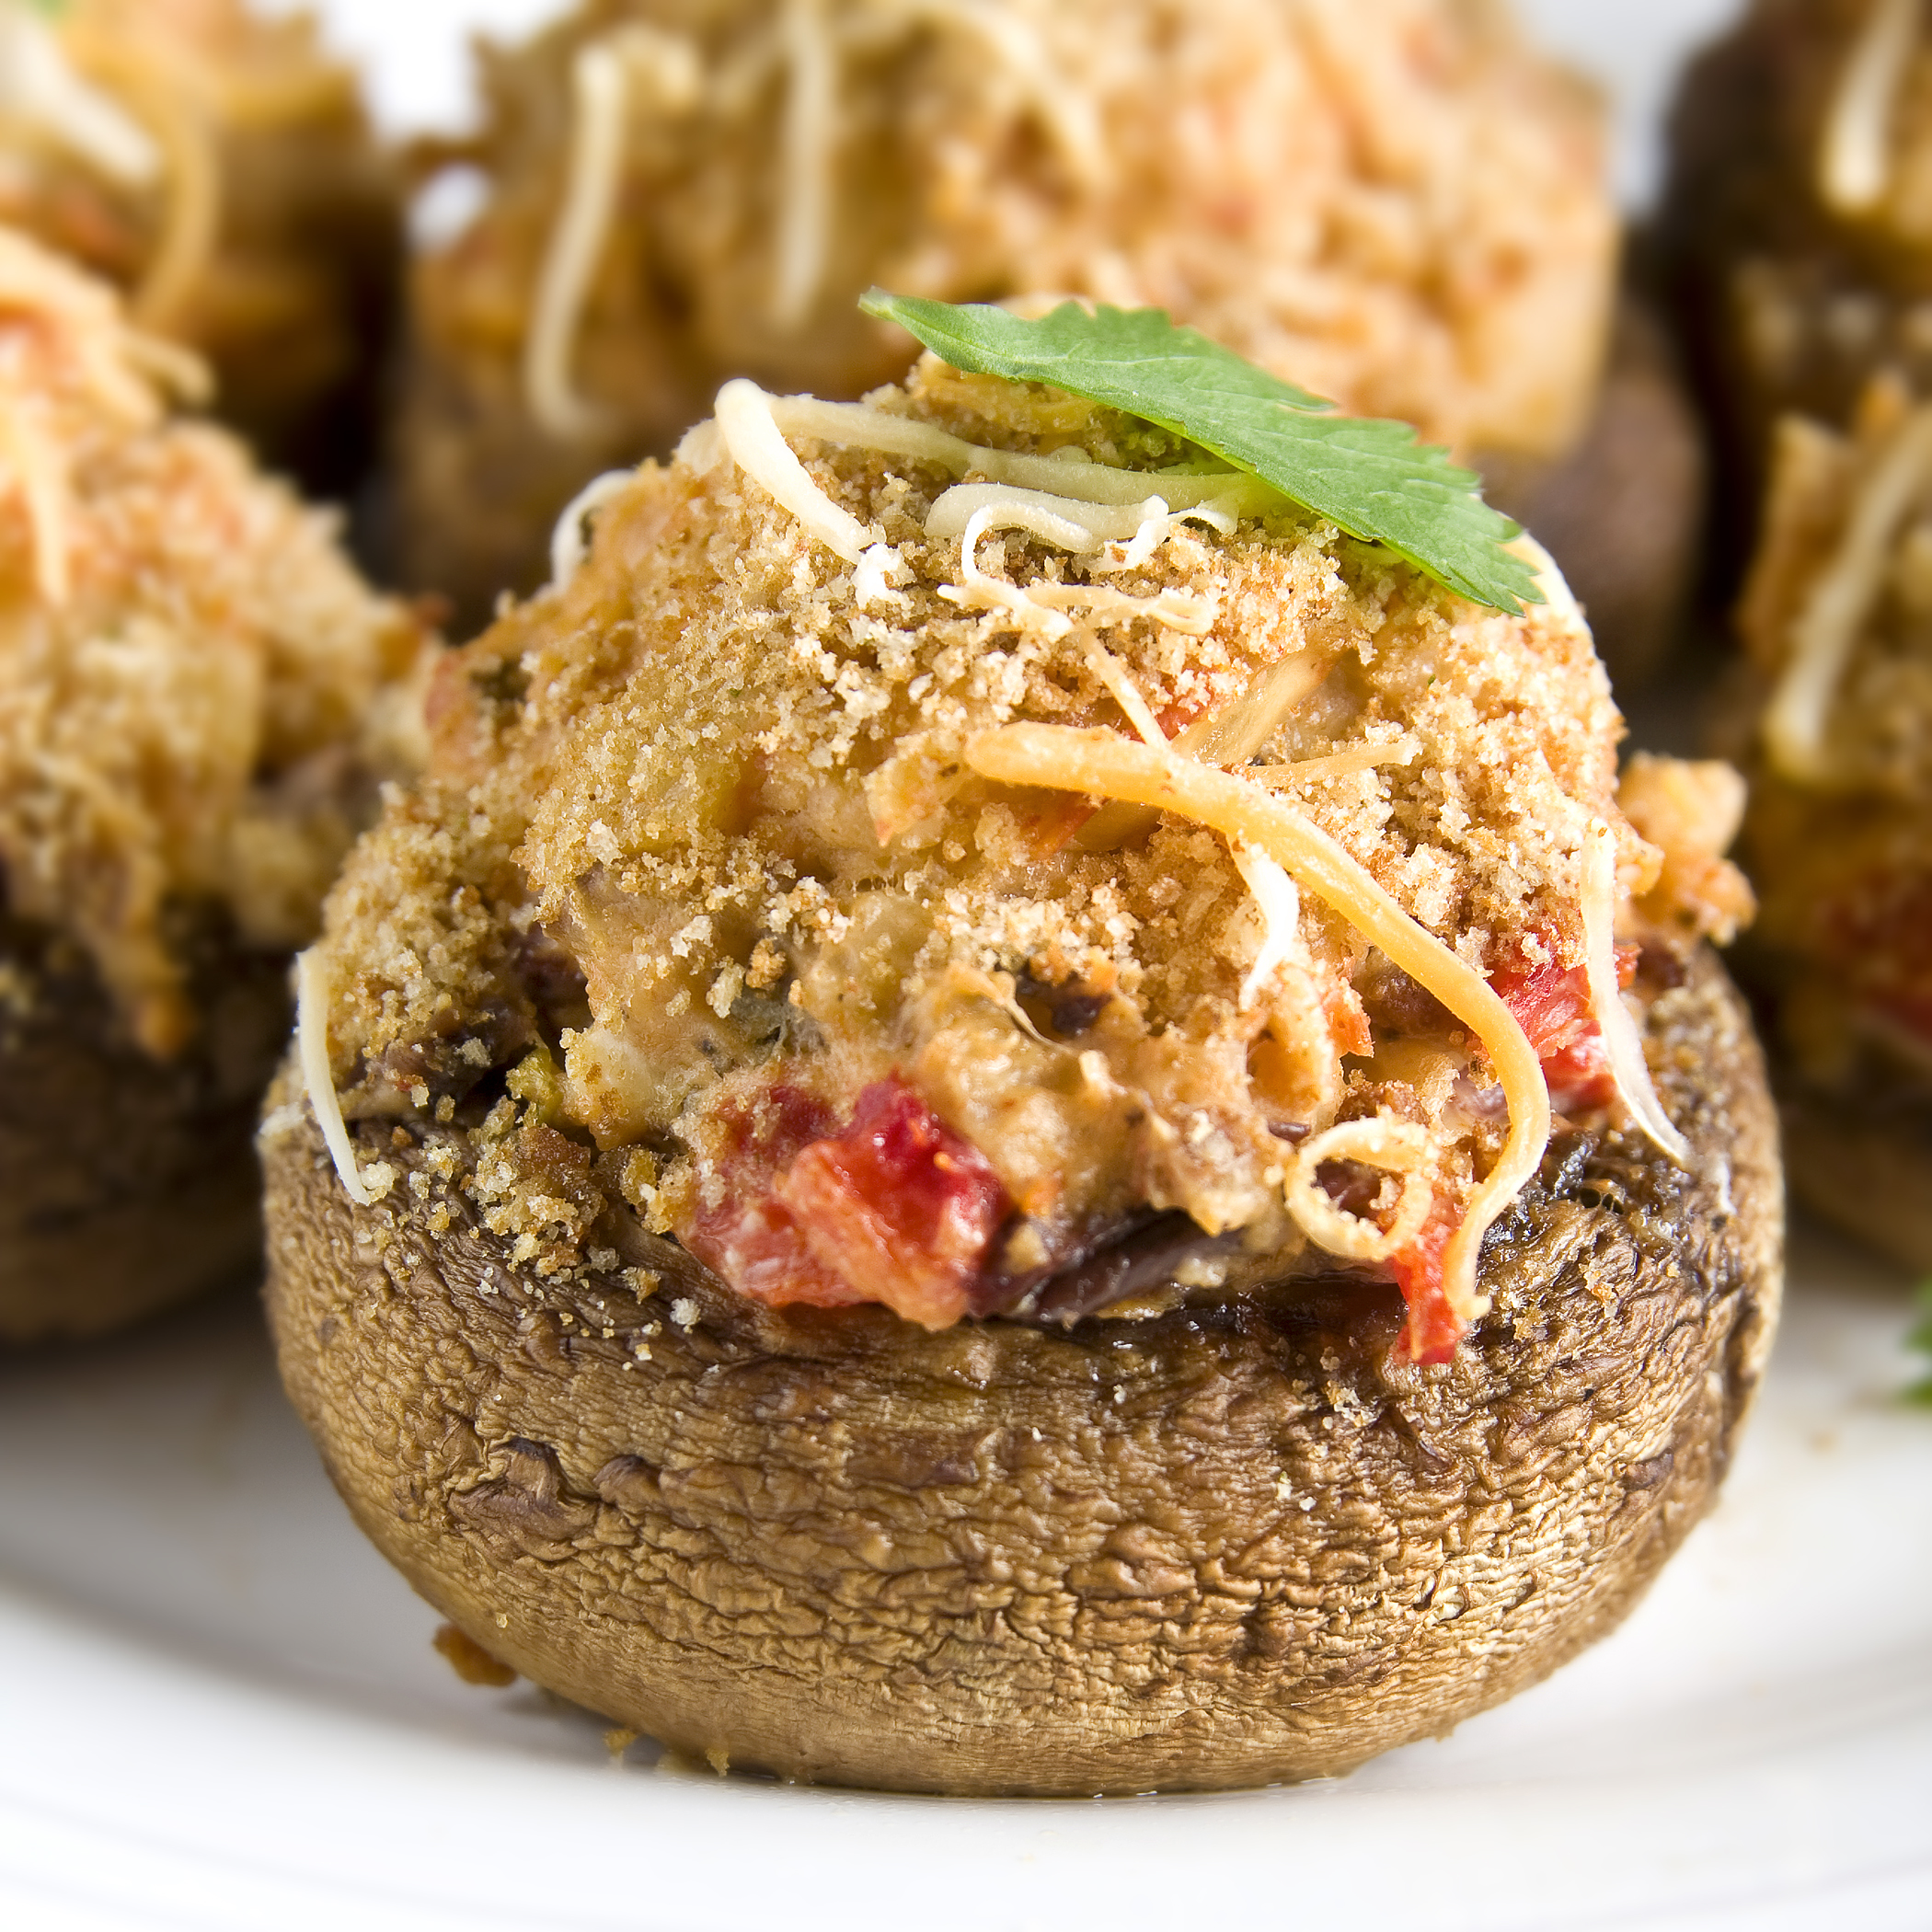 stuffed_mushrooms-2.jpg